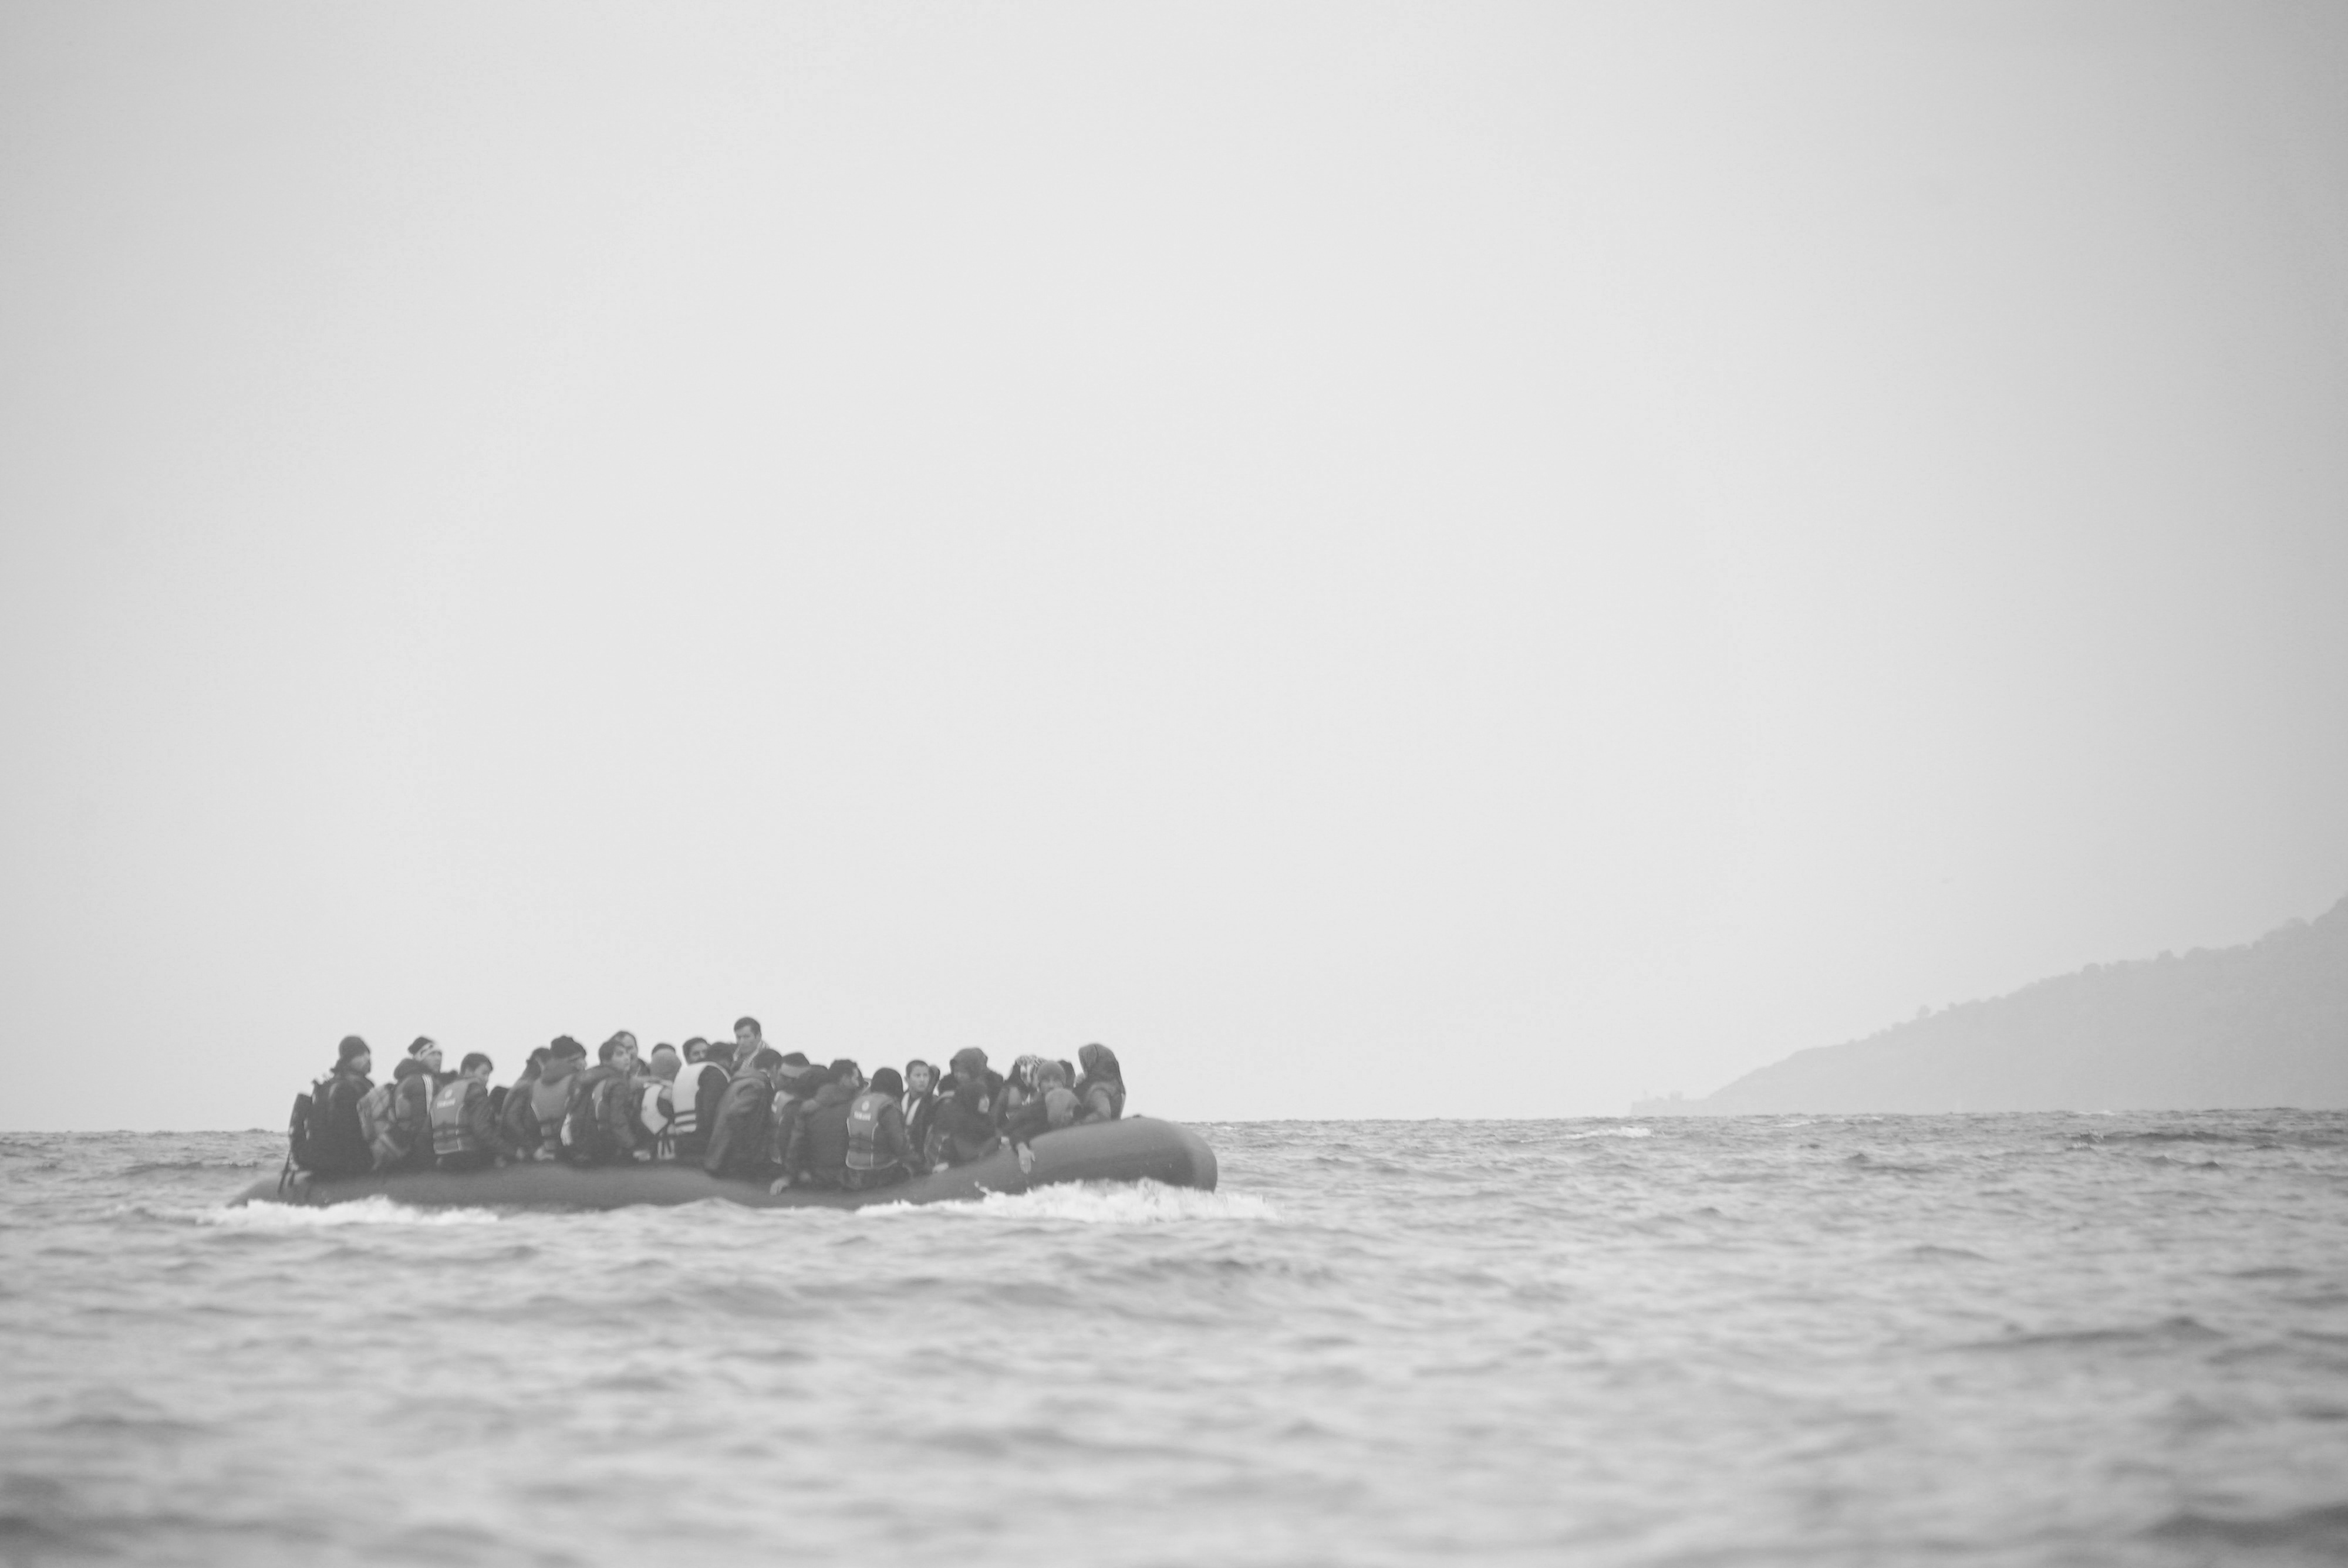 Refugees on a boat crossing the Mediterranean Sea, heading from Turkish coast to Lesbos, 29 Jan. 2016. Photo Mstyslav Chernov/Unframe, CC-BY-SA-4.0.